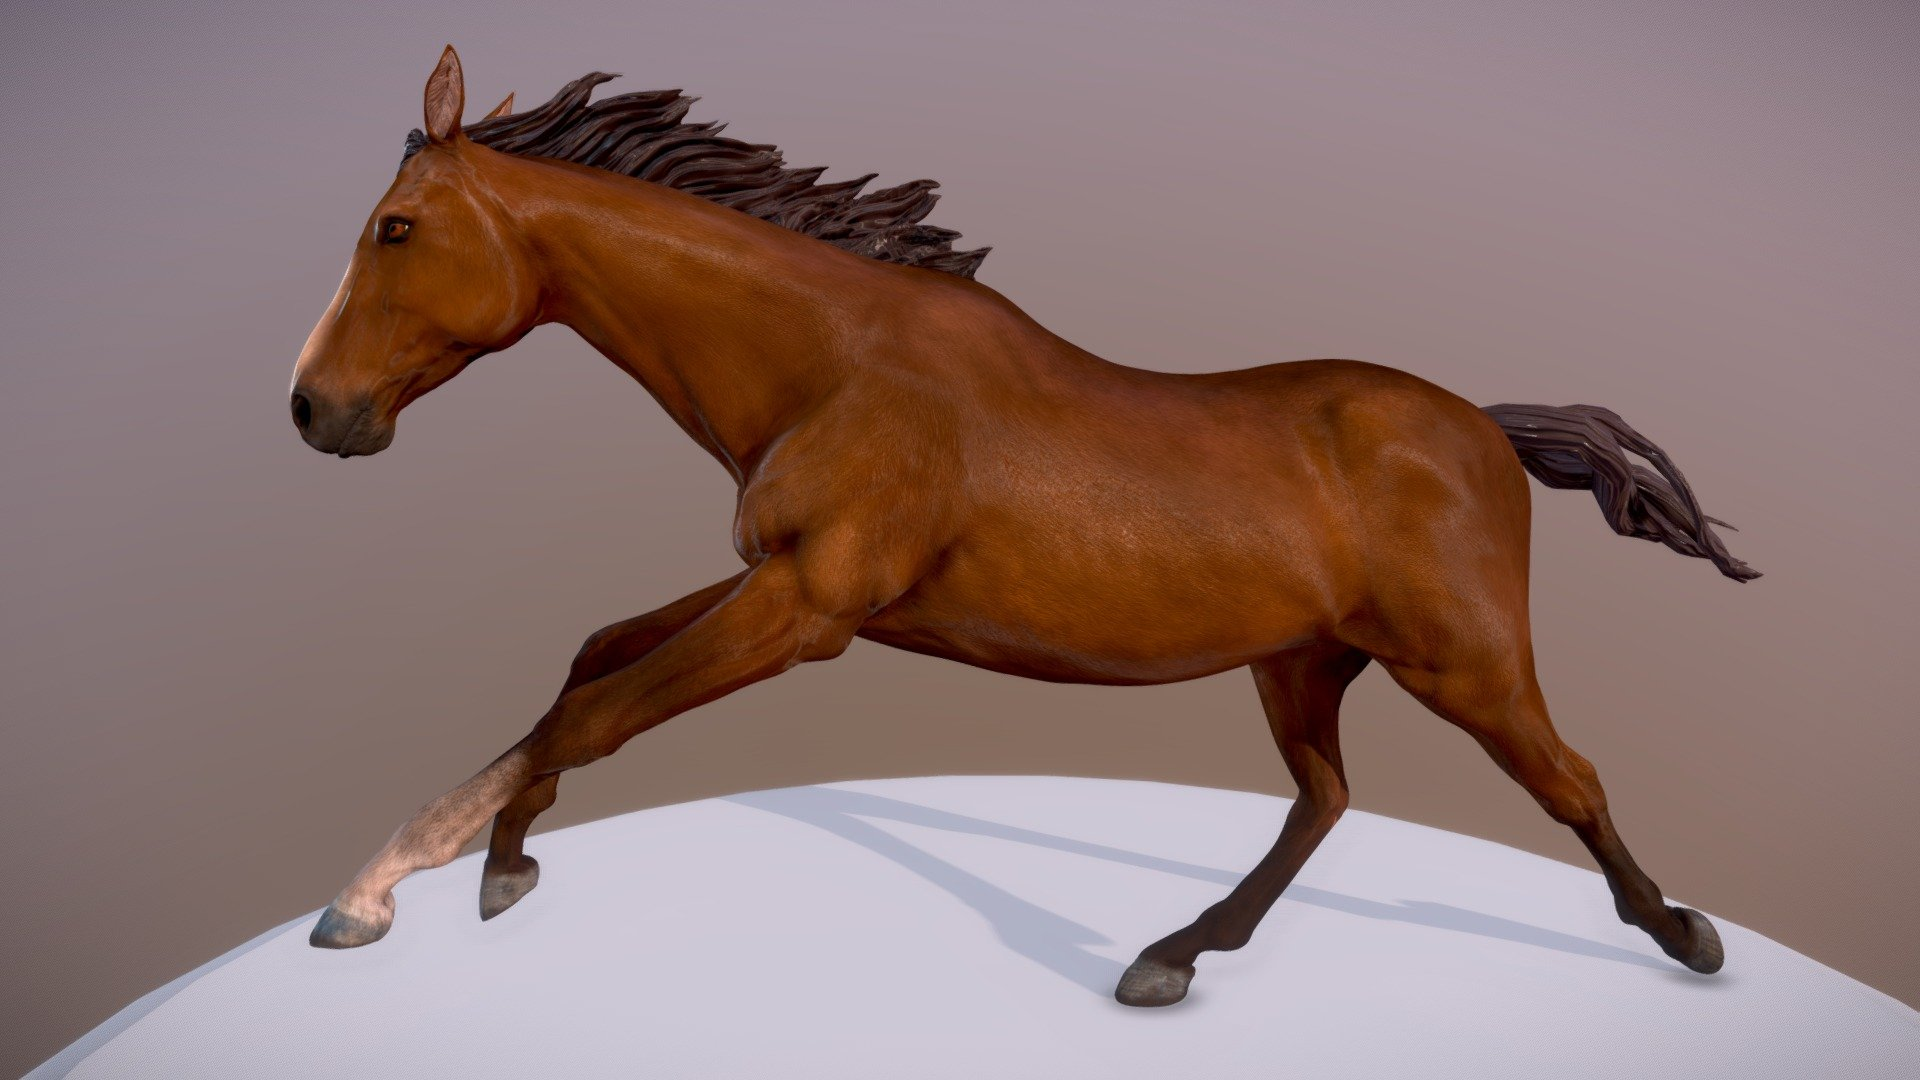 Horse Running Download Free 3d Model By Verena Boeck Kling Cd75d66 Sketchfab